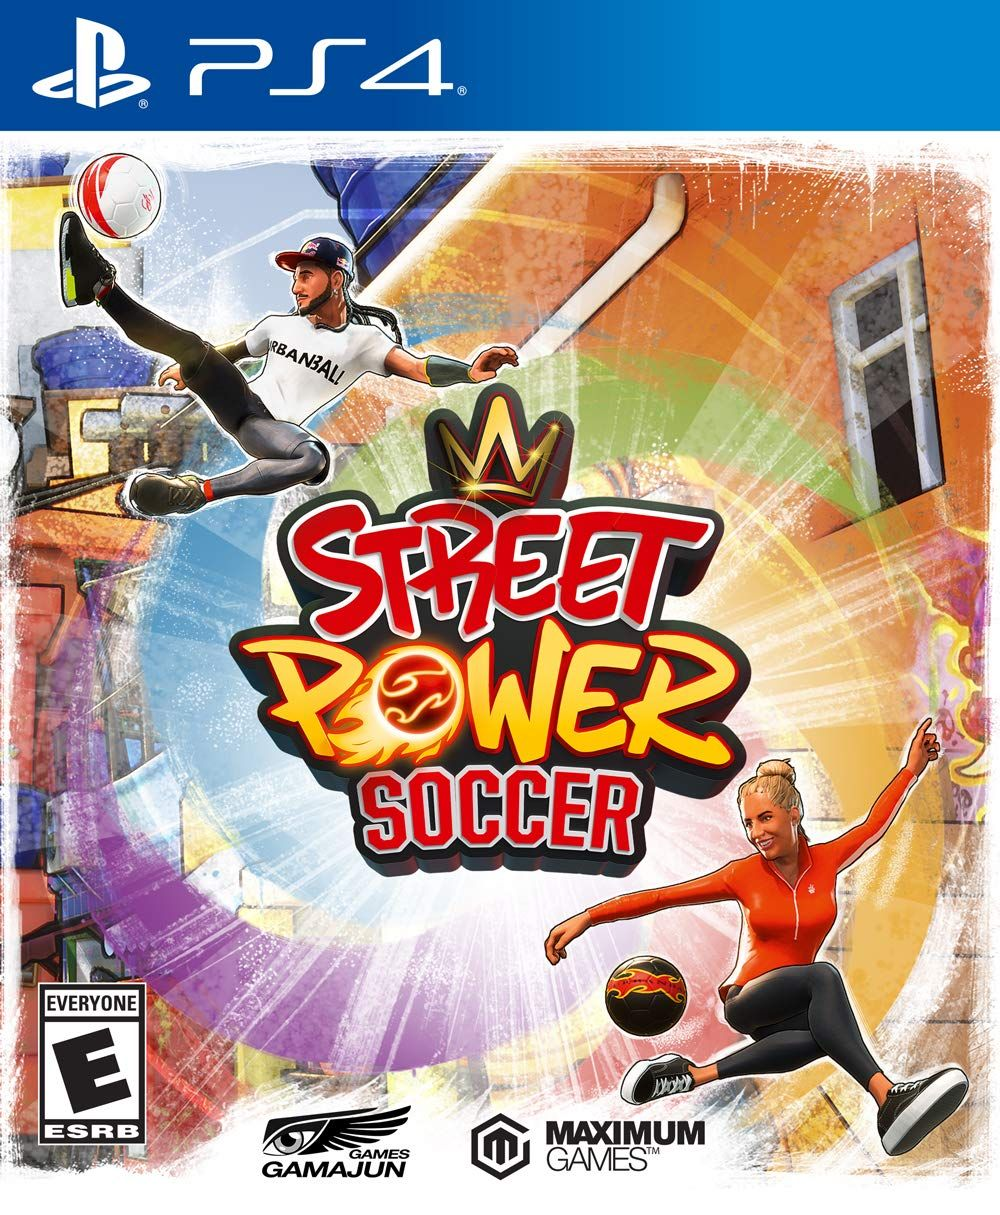 Street Power Soccer In 2020 Xbox One Games Xbox One Games